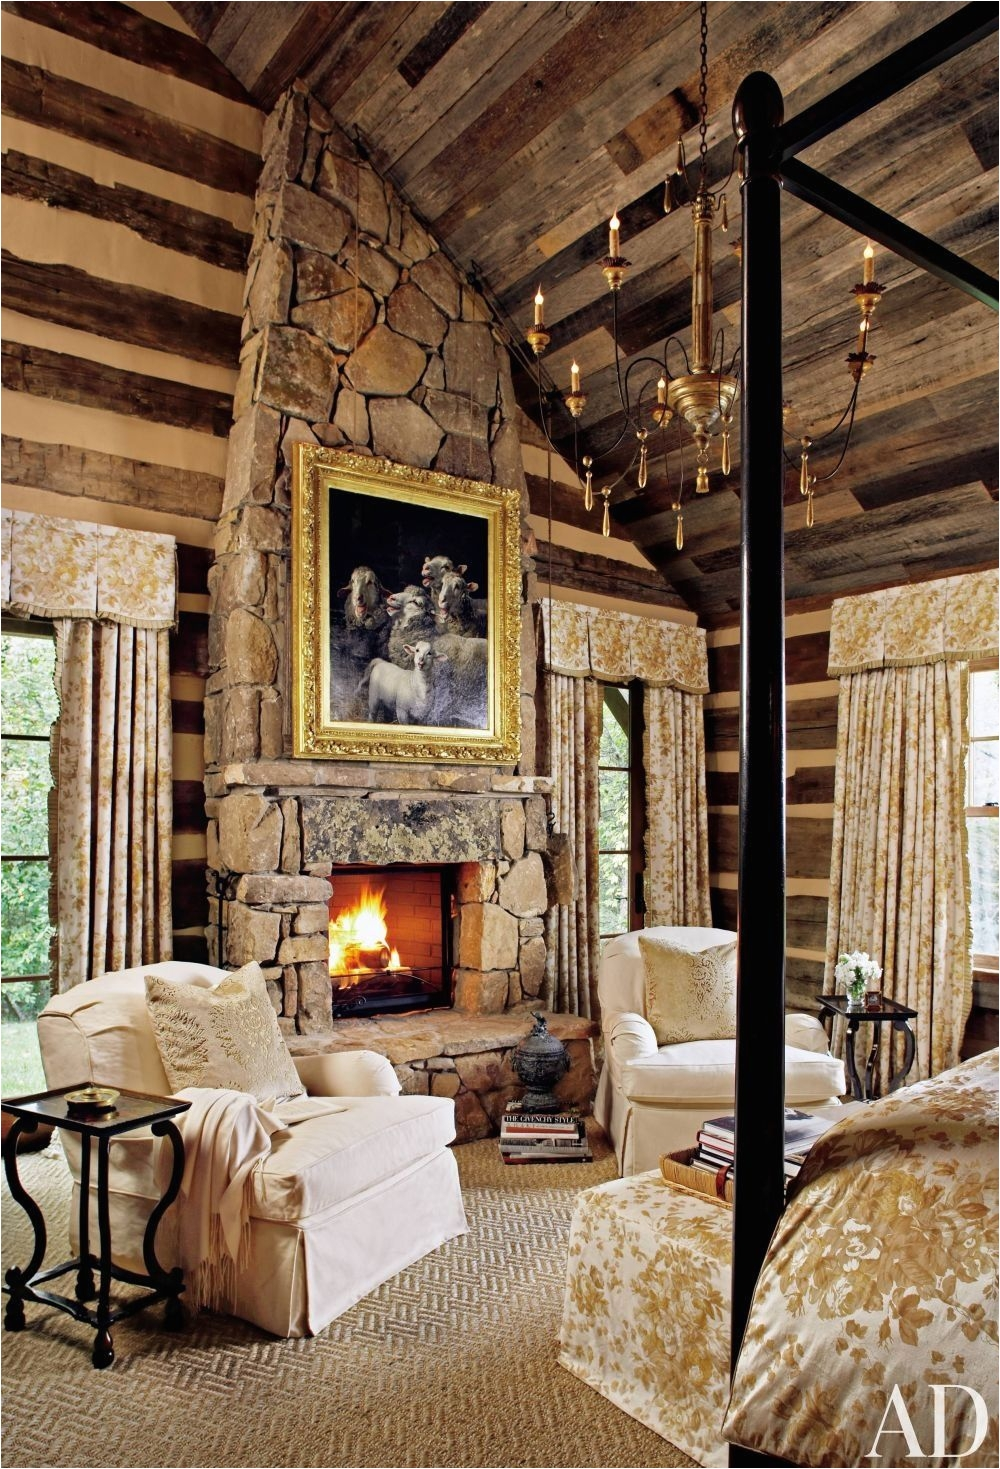 Bedroom Sweet Rustic Bedroom Decor Ideas With Nice Country Architecture Used Stone Brick Fireplace bine